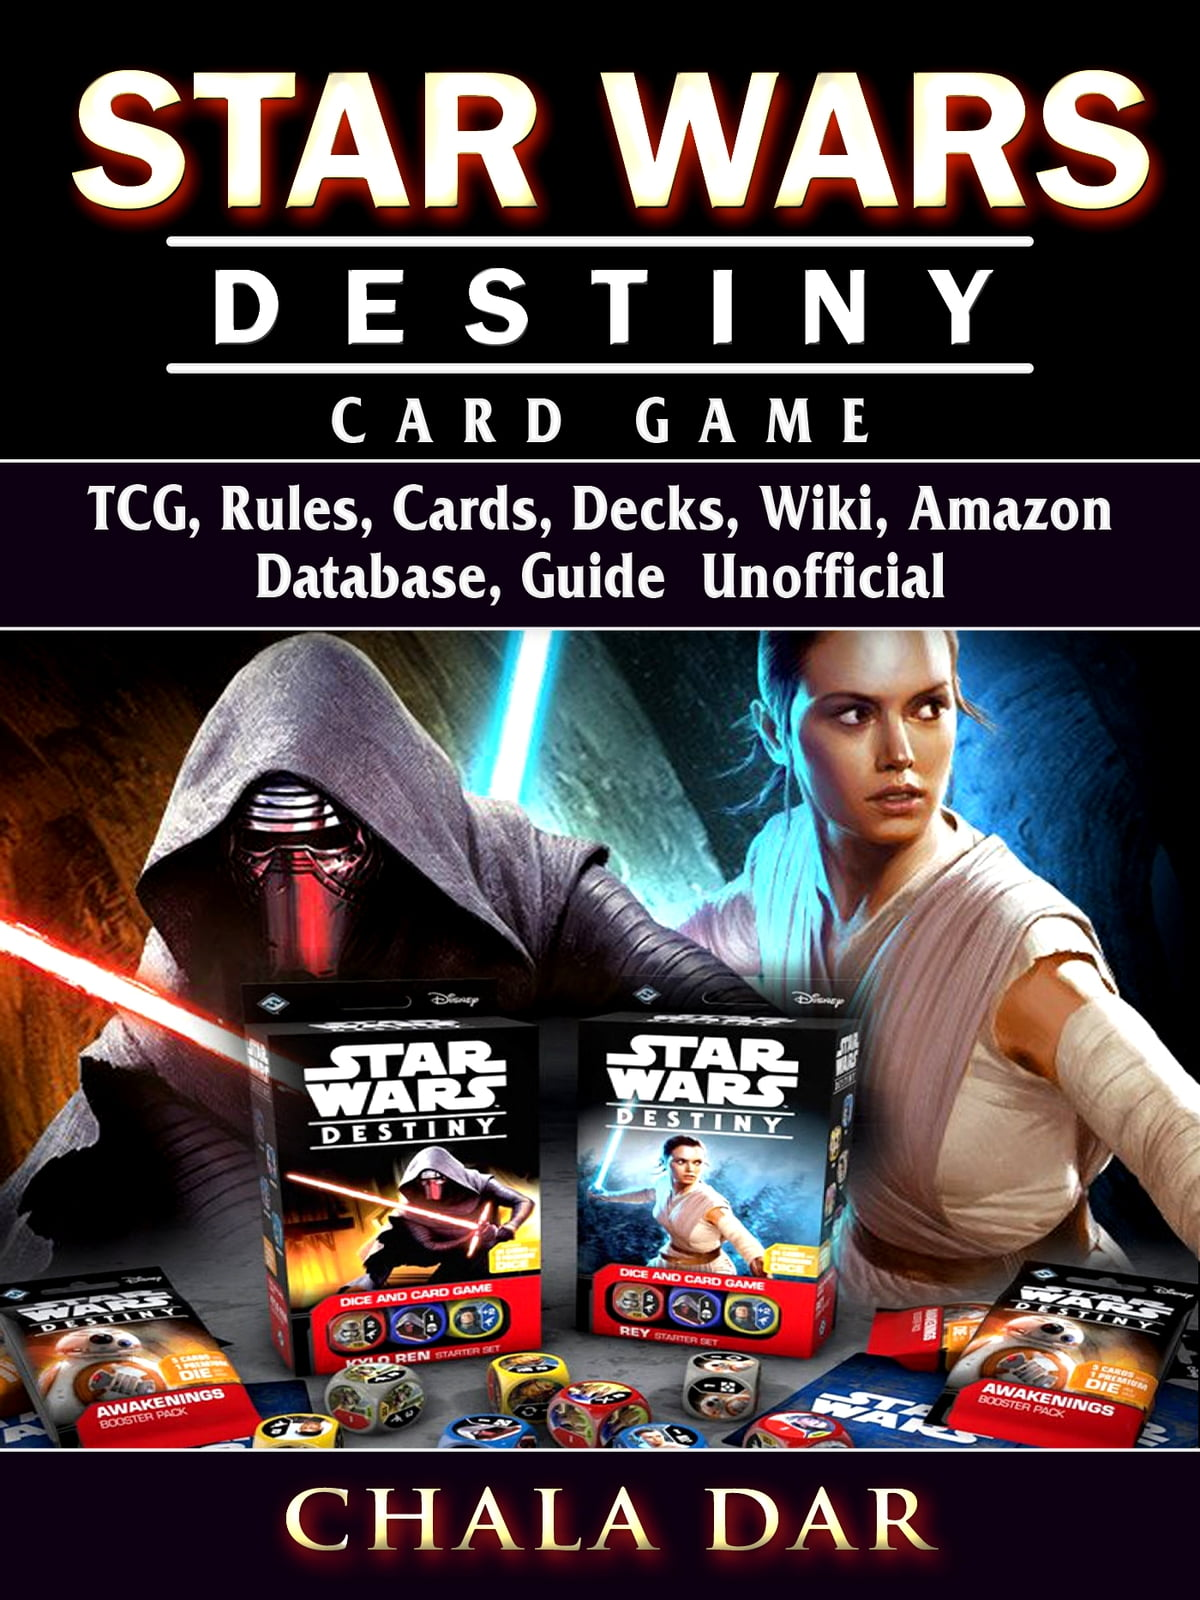 Star Wars Destiny Card Game Tcg Rules Cards Decks Wiki Amazon Database Guide Unofficial Ebook By Chala Dar 9781387965199 Rakuten Kobo United States